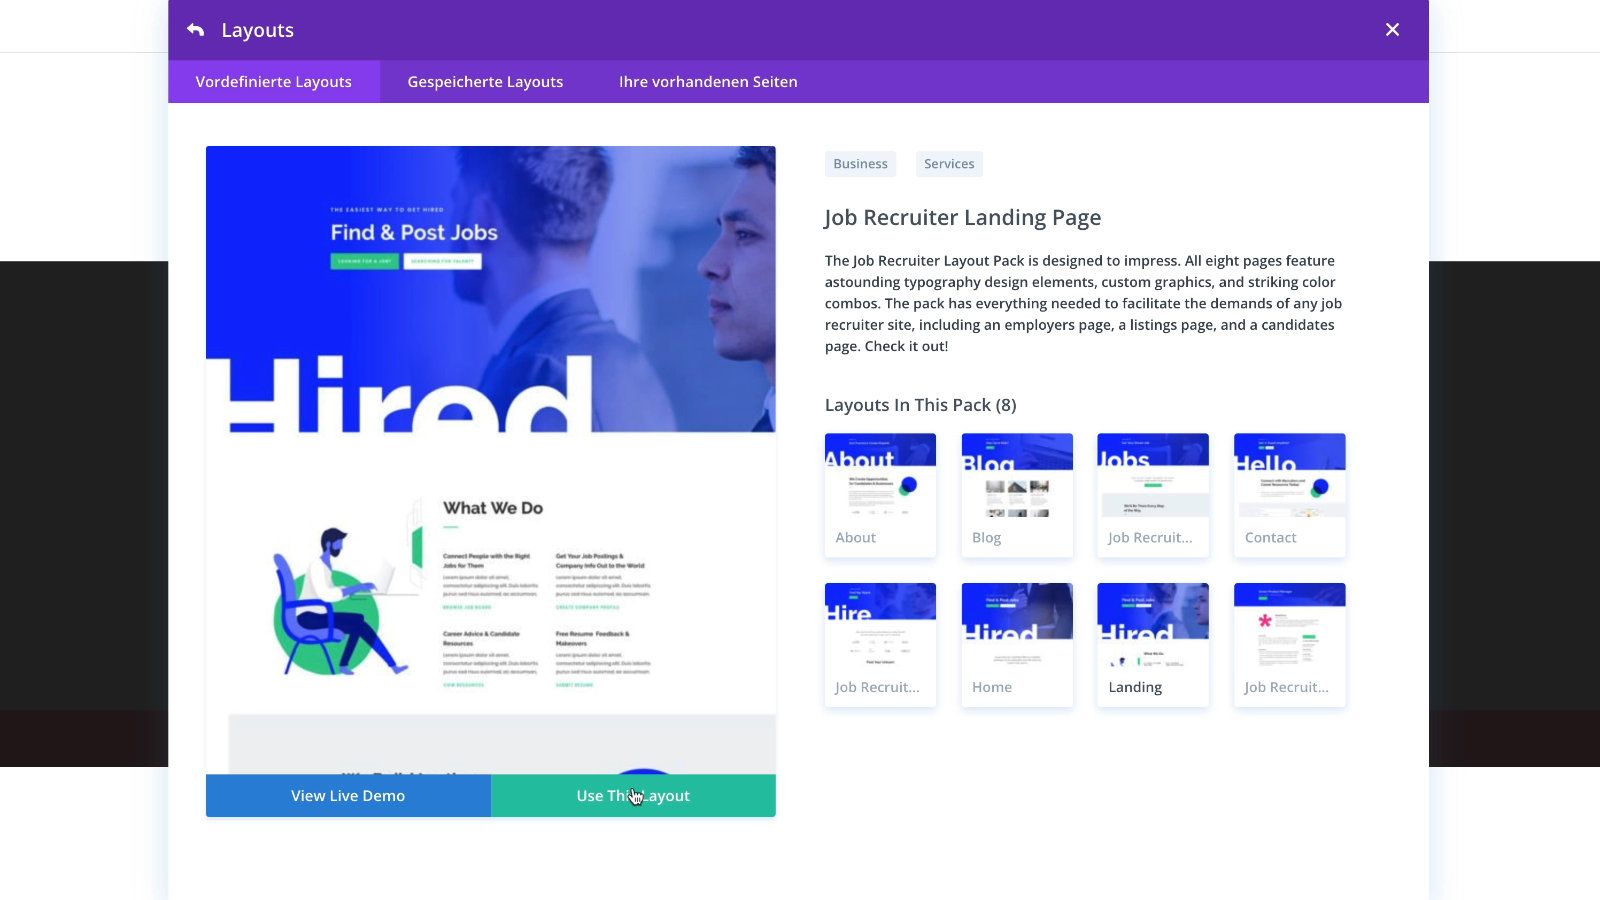 Divi Theme Job Recruiter Layout Landingpage